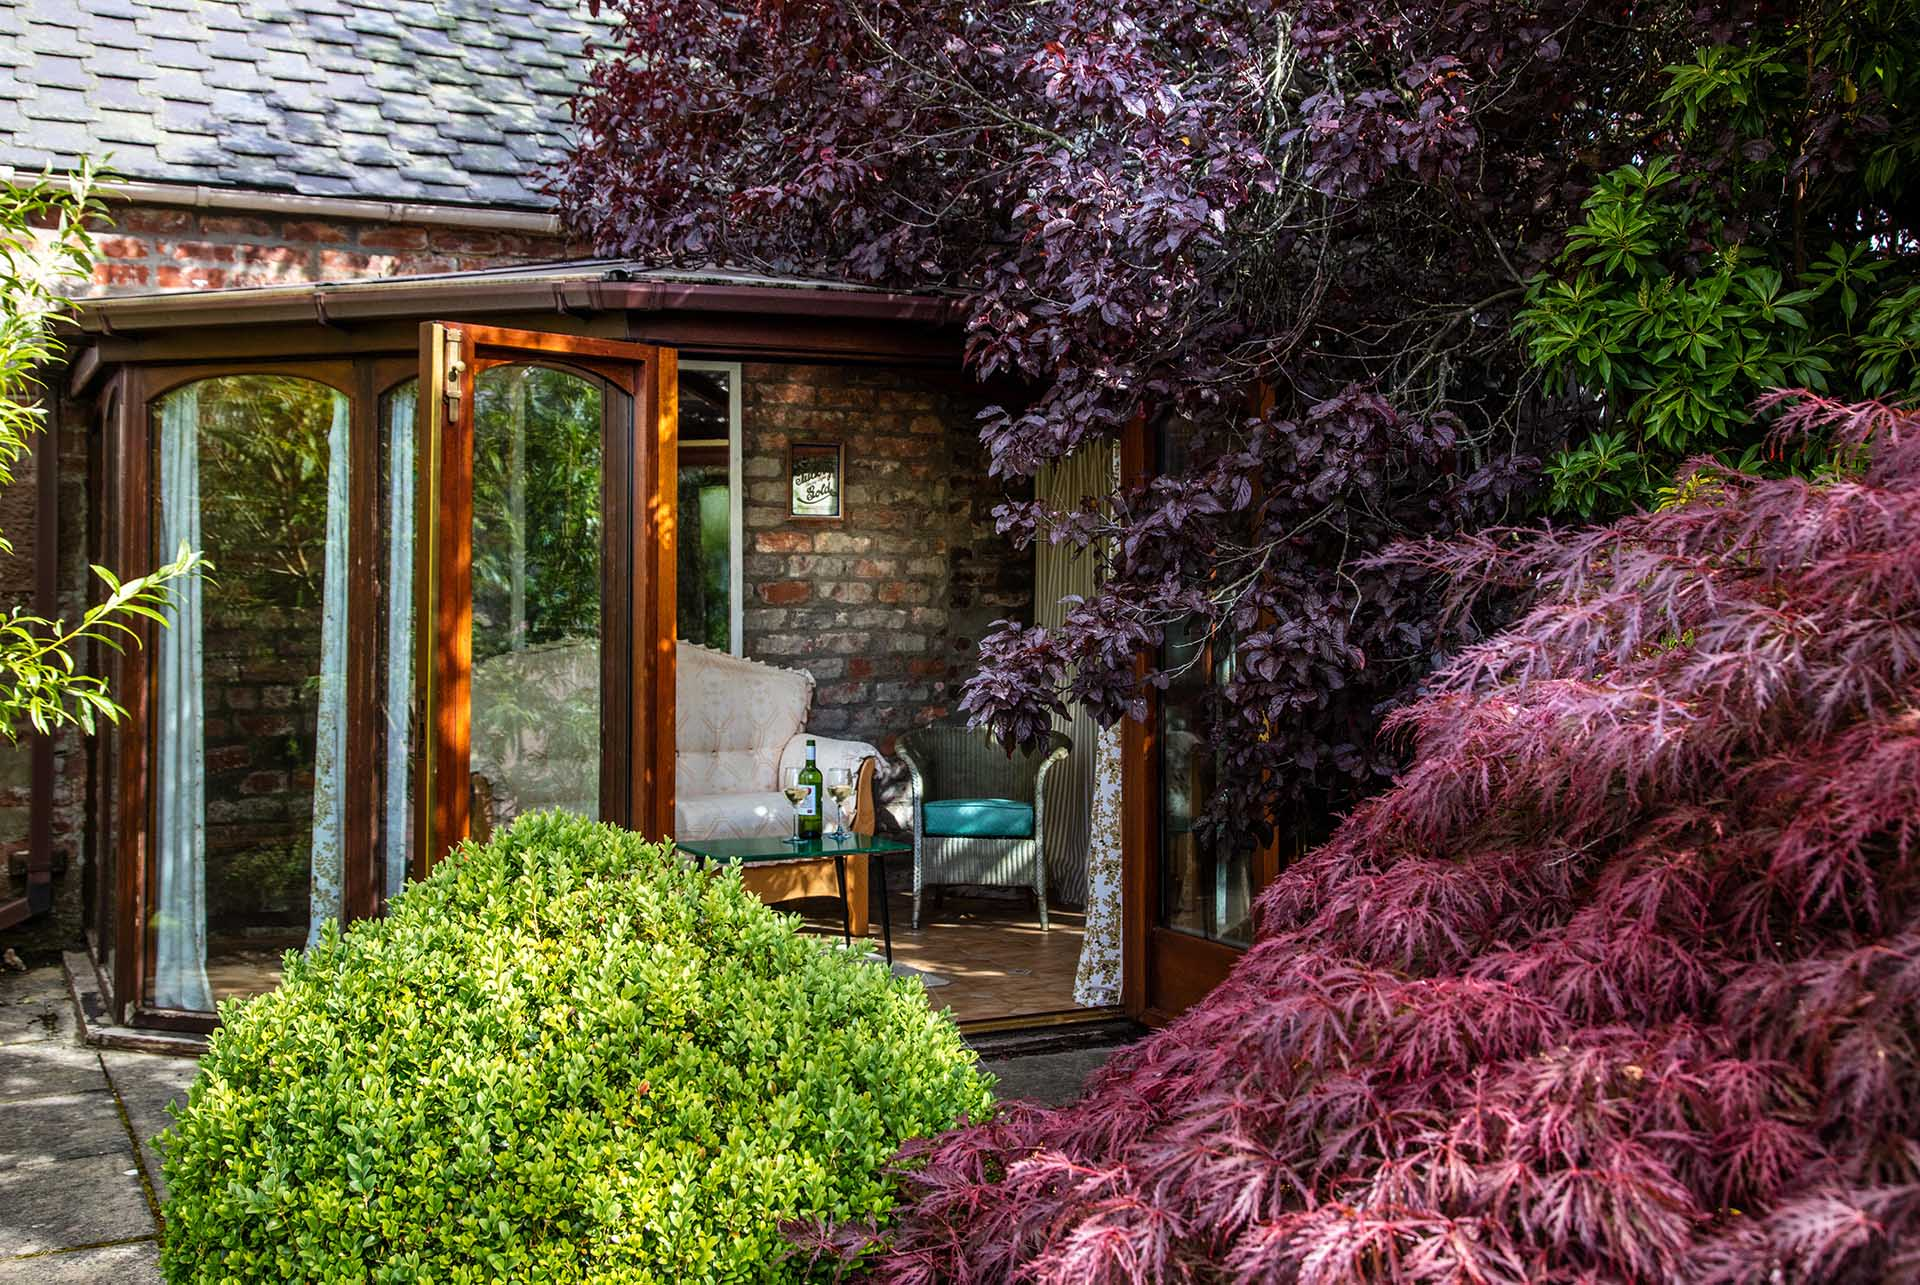 The summerhouse provides a quiet retreat.